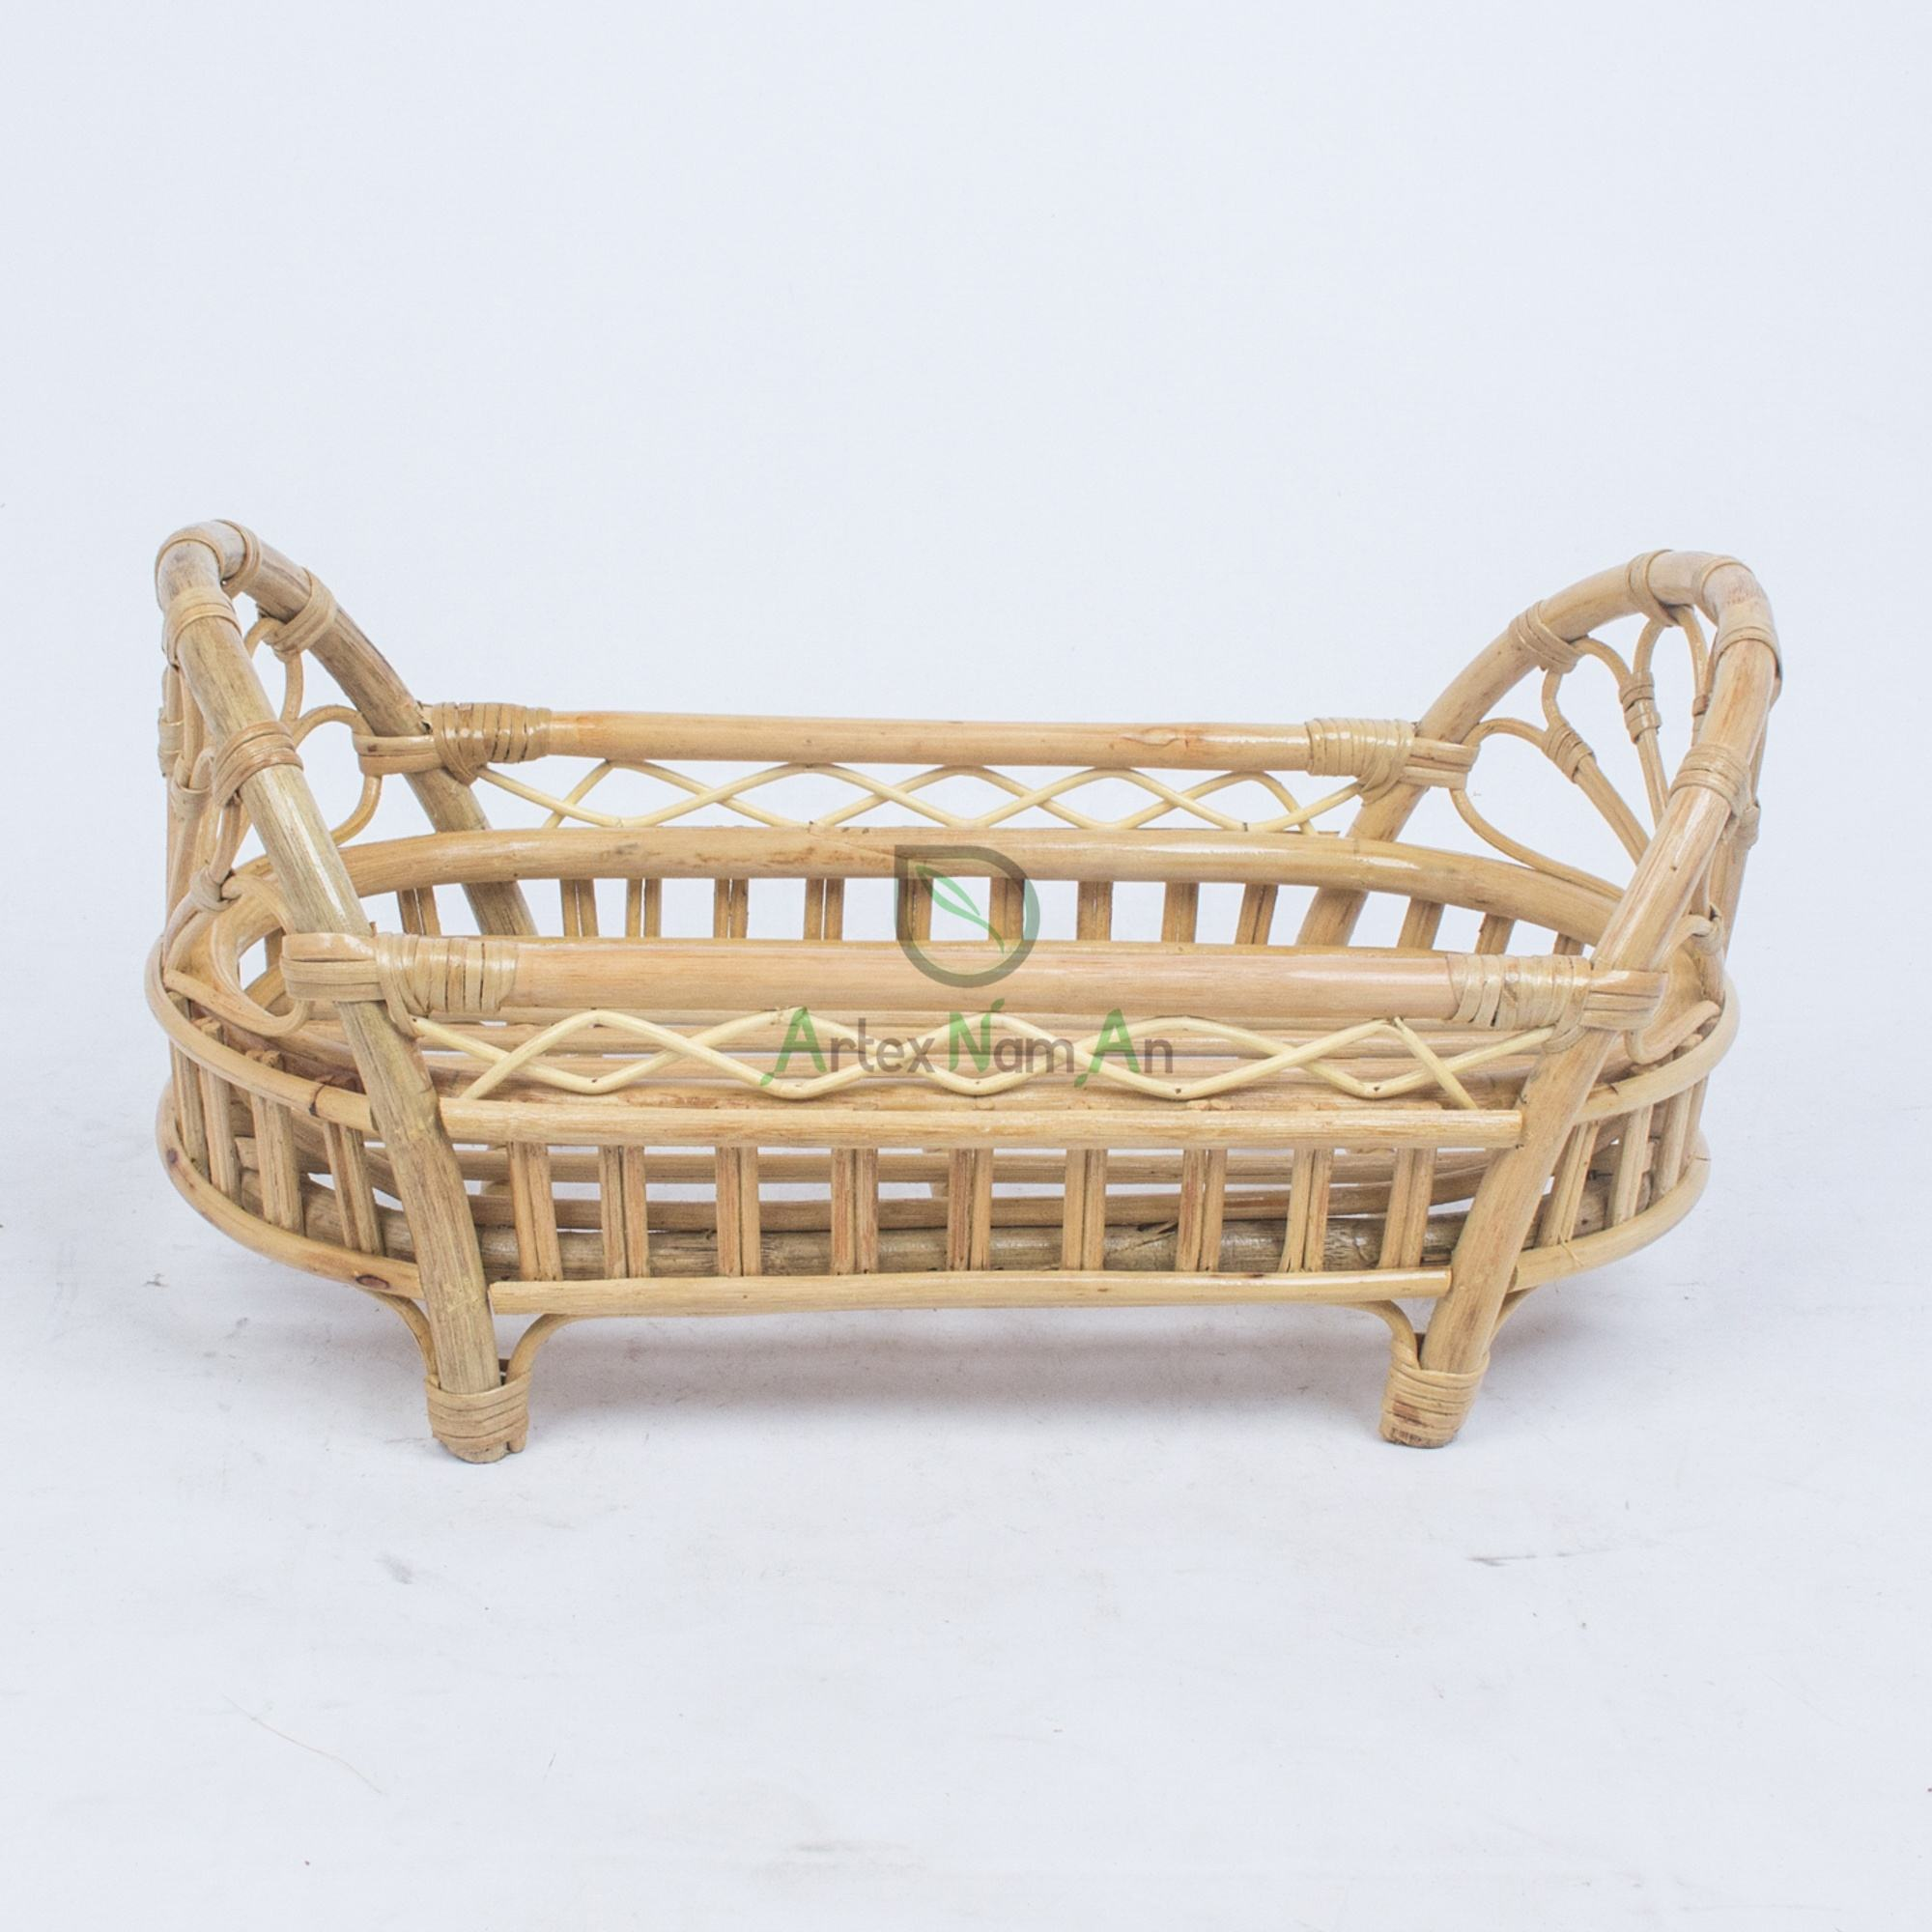 Newest design small rattan baby doll crib bed for doll houses furniture from Vietnam